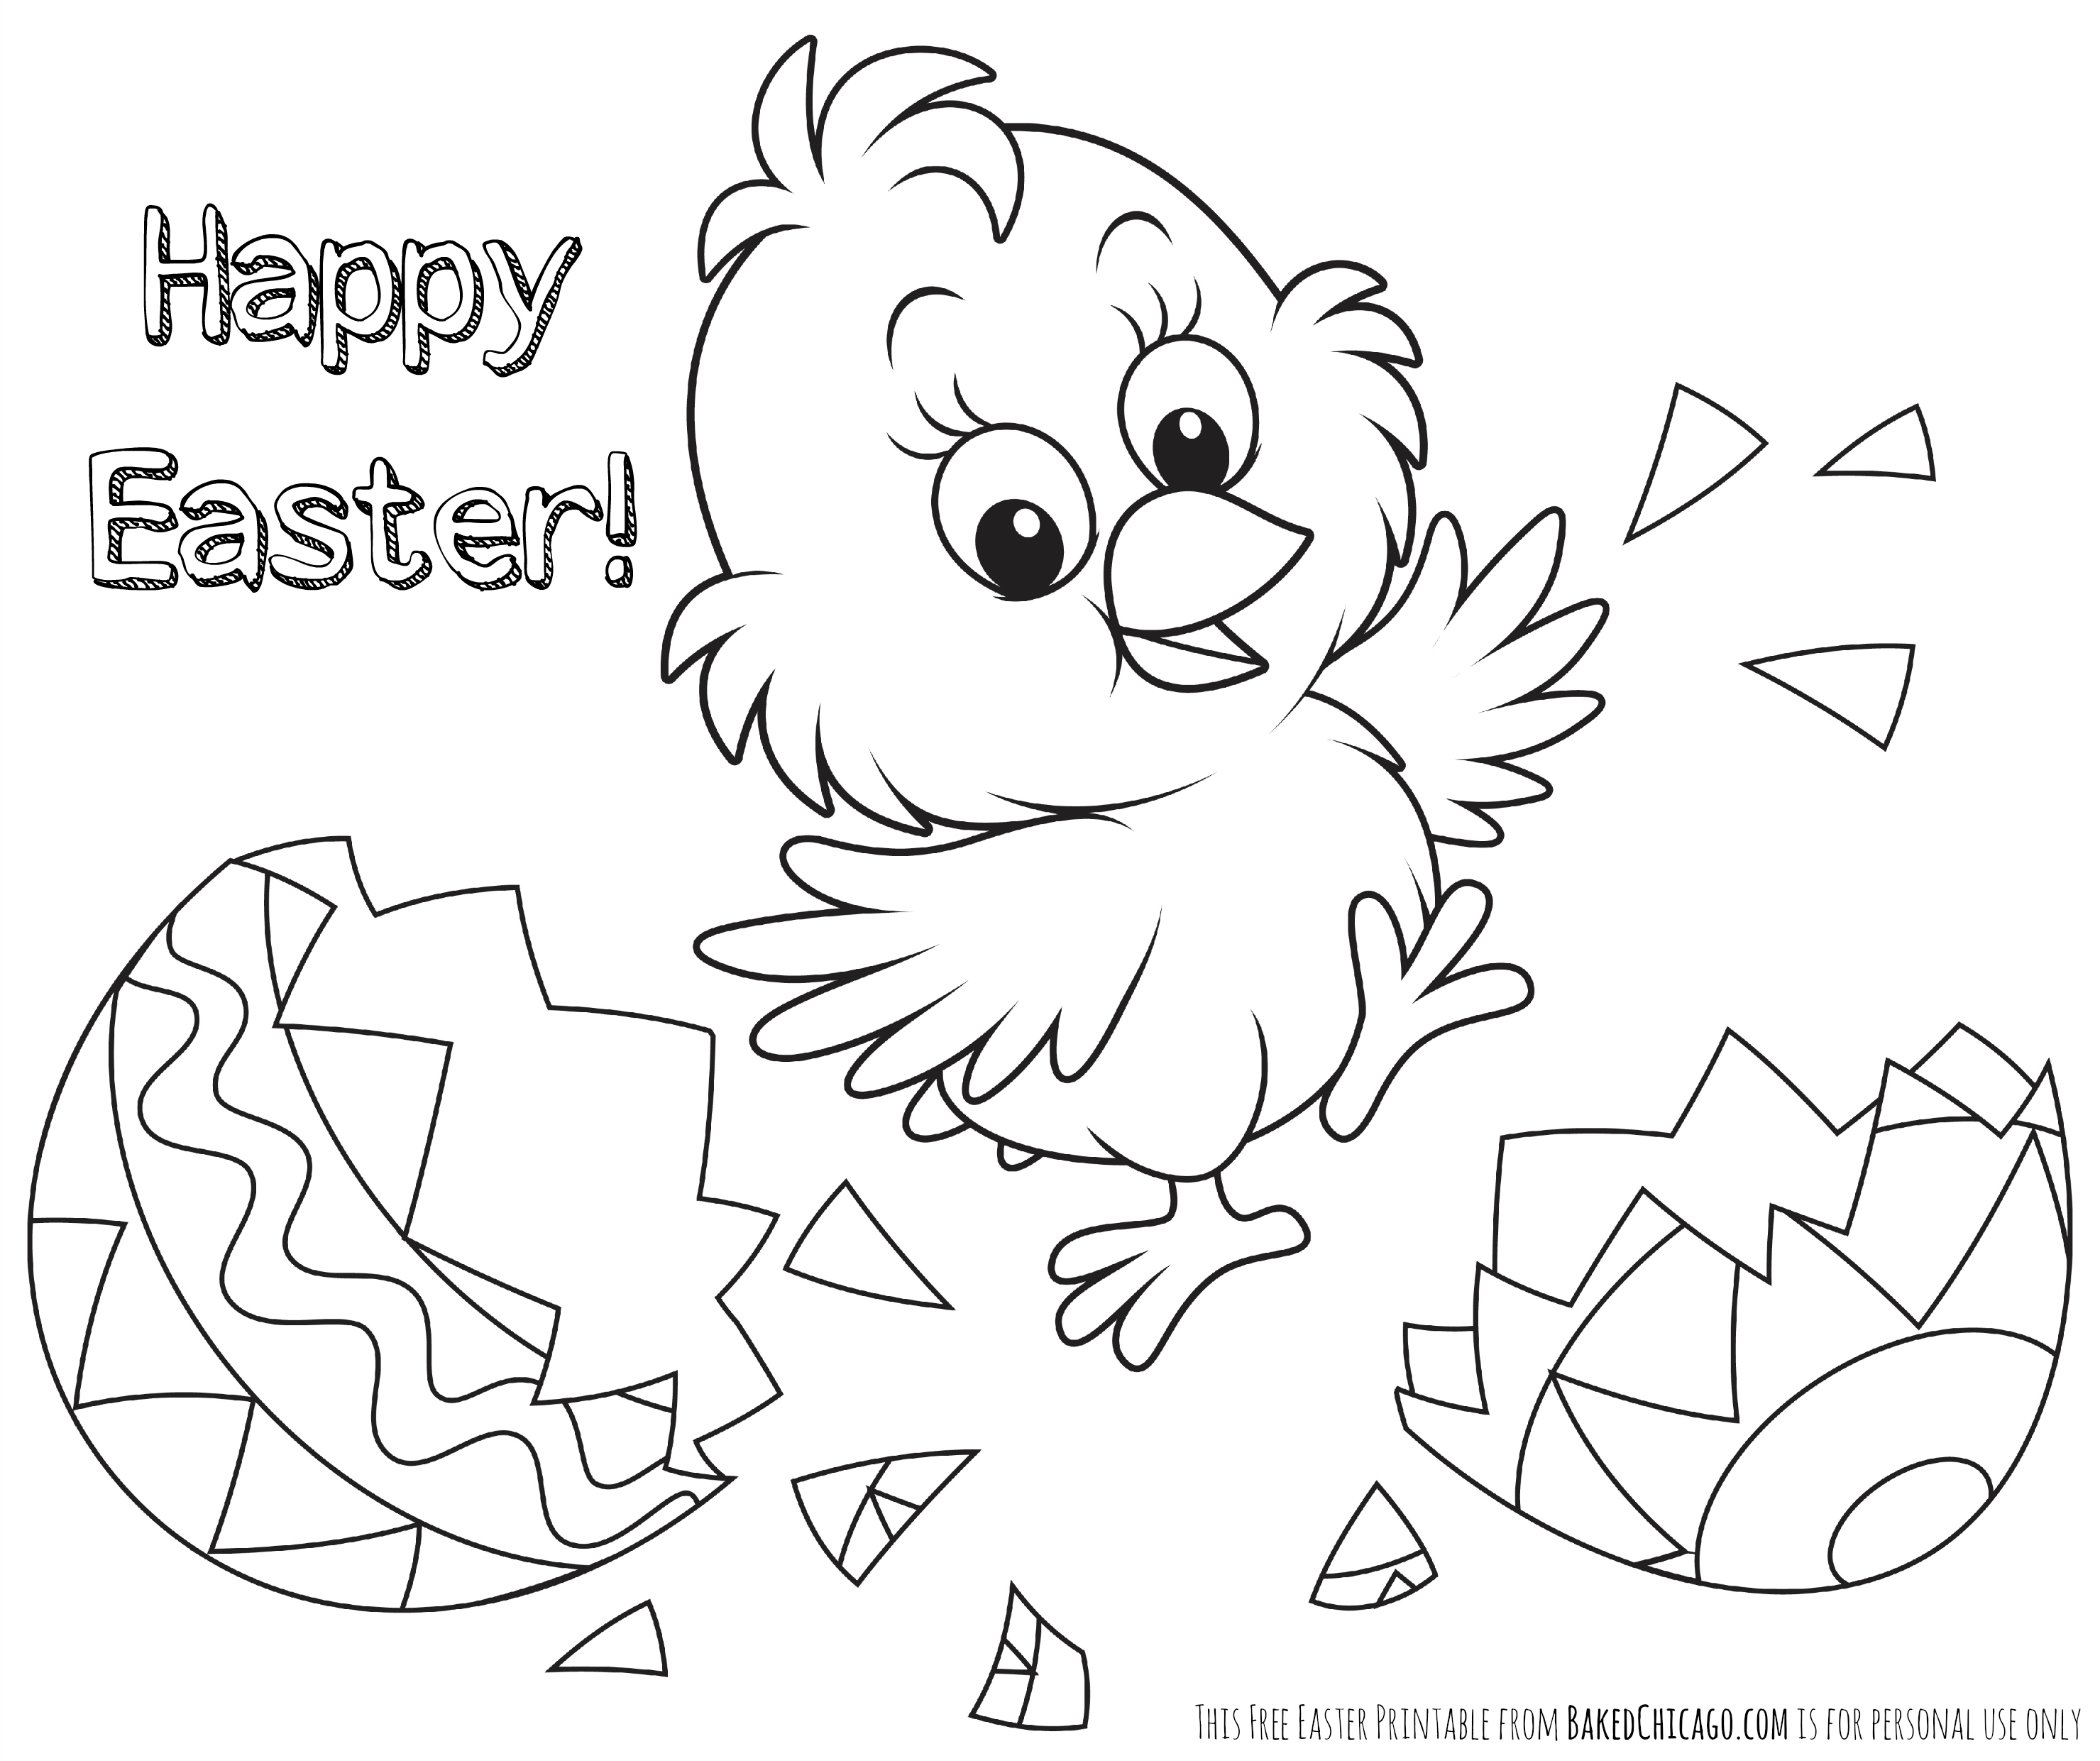 Coloring Easter Pages to Print Printable 9b - To print for your project